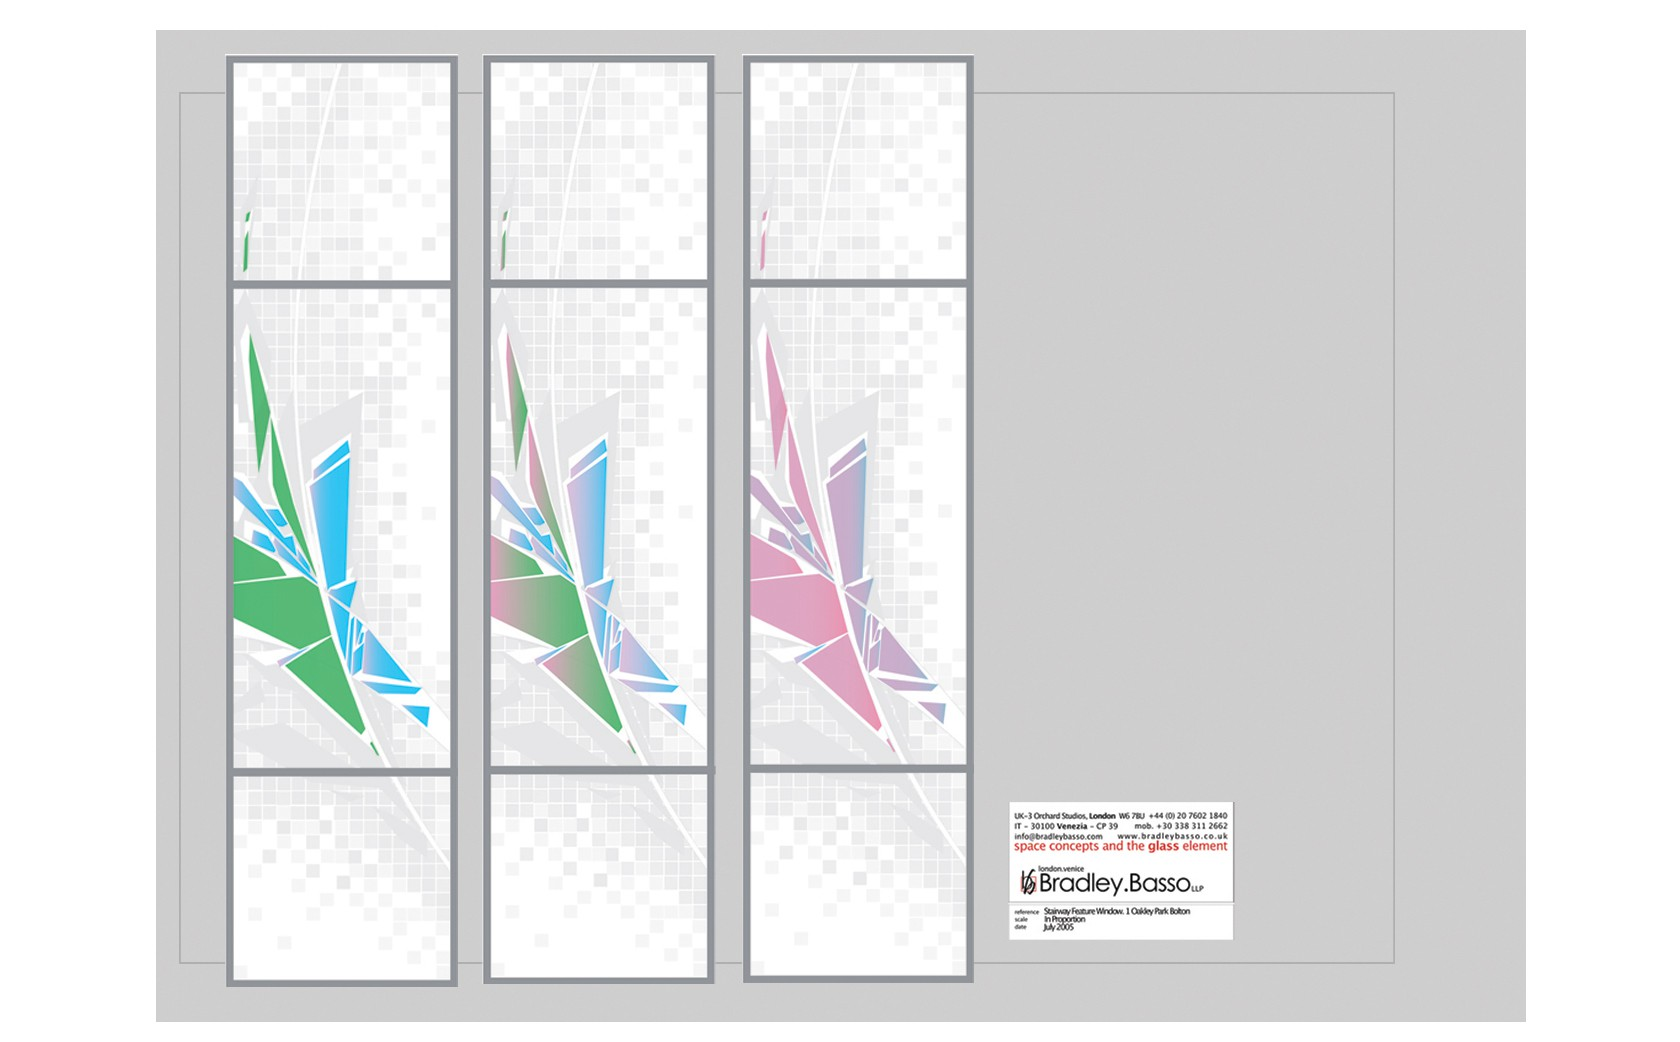 Design stage. Proposal. Changing light qualities of dichroic glass